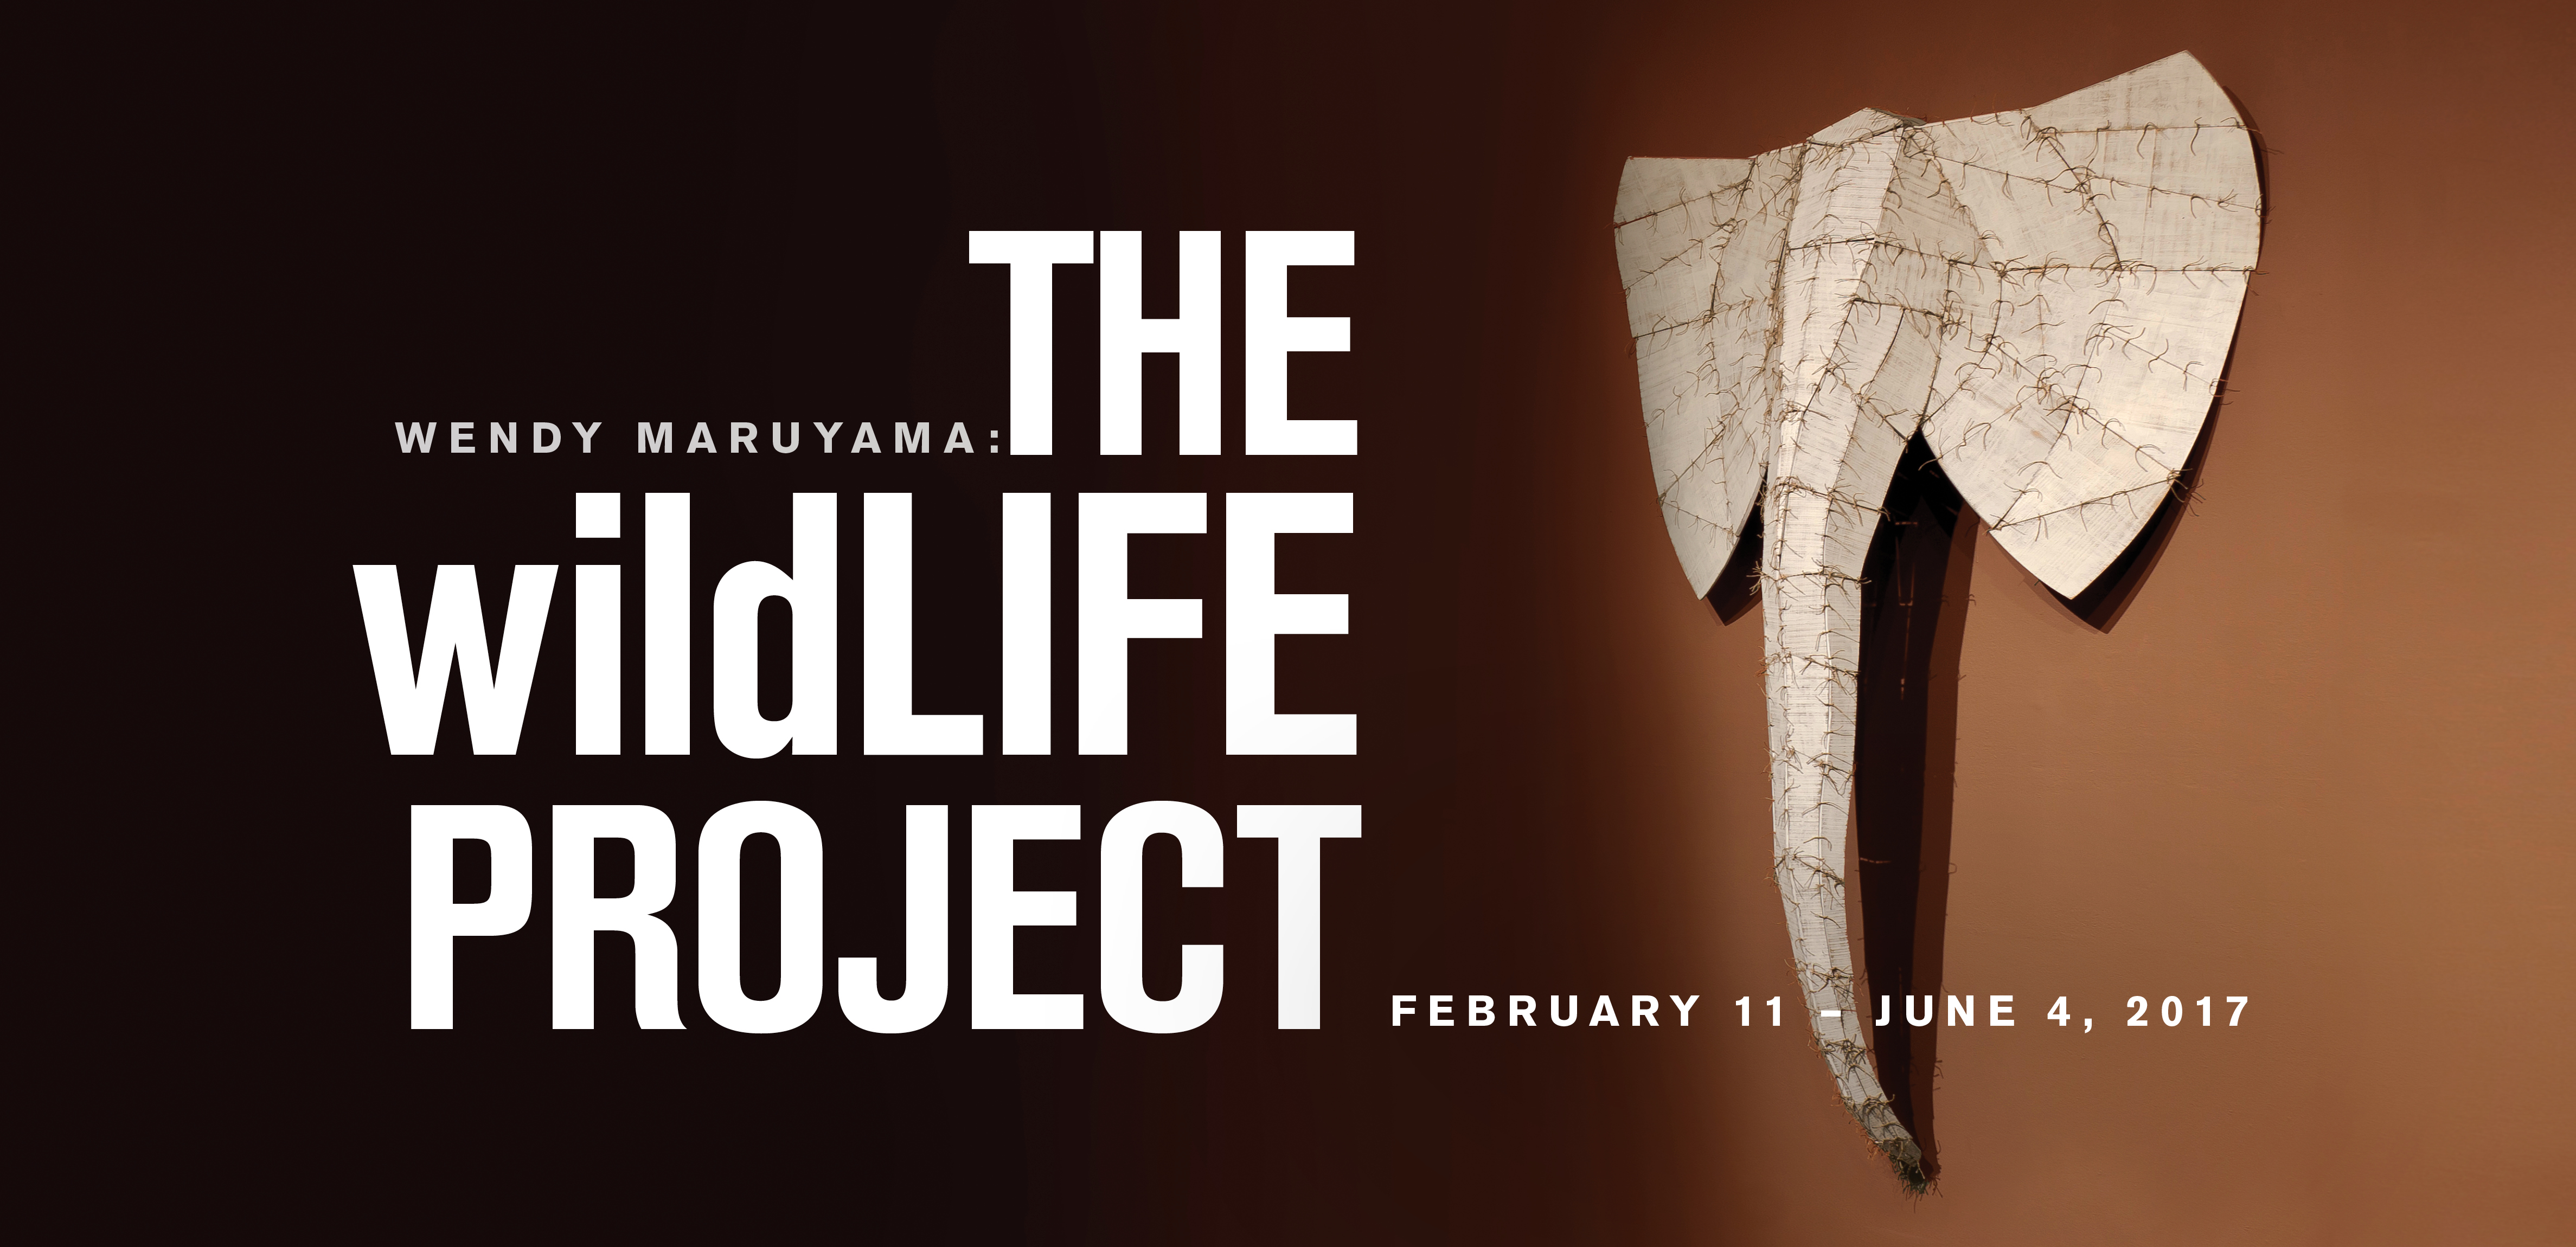 The wildLIFE Project